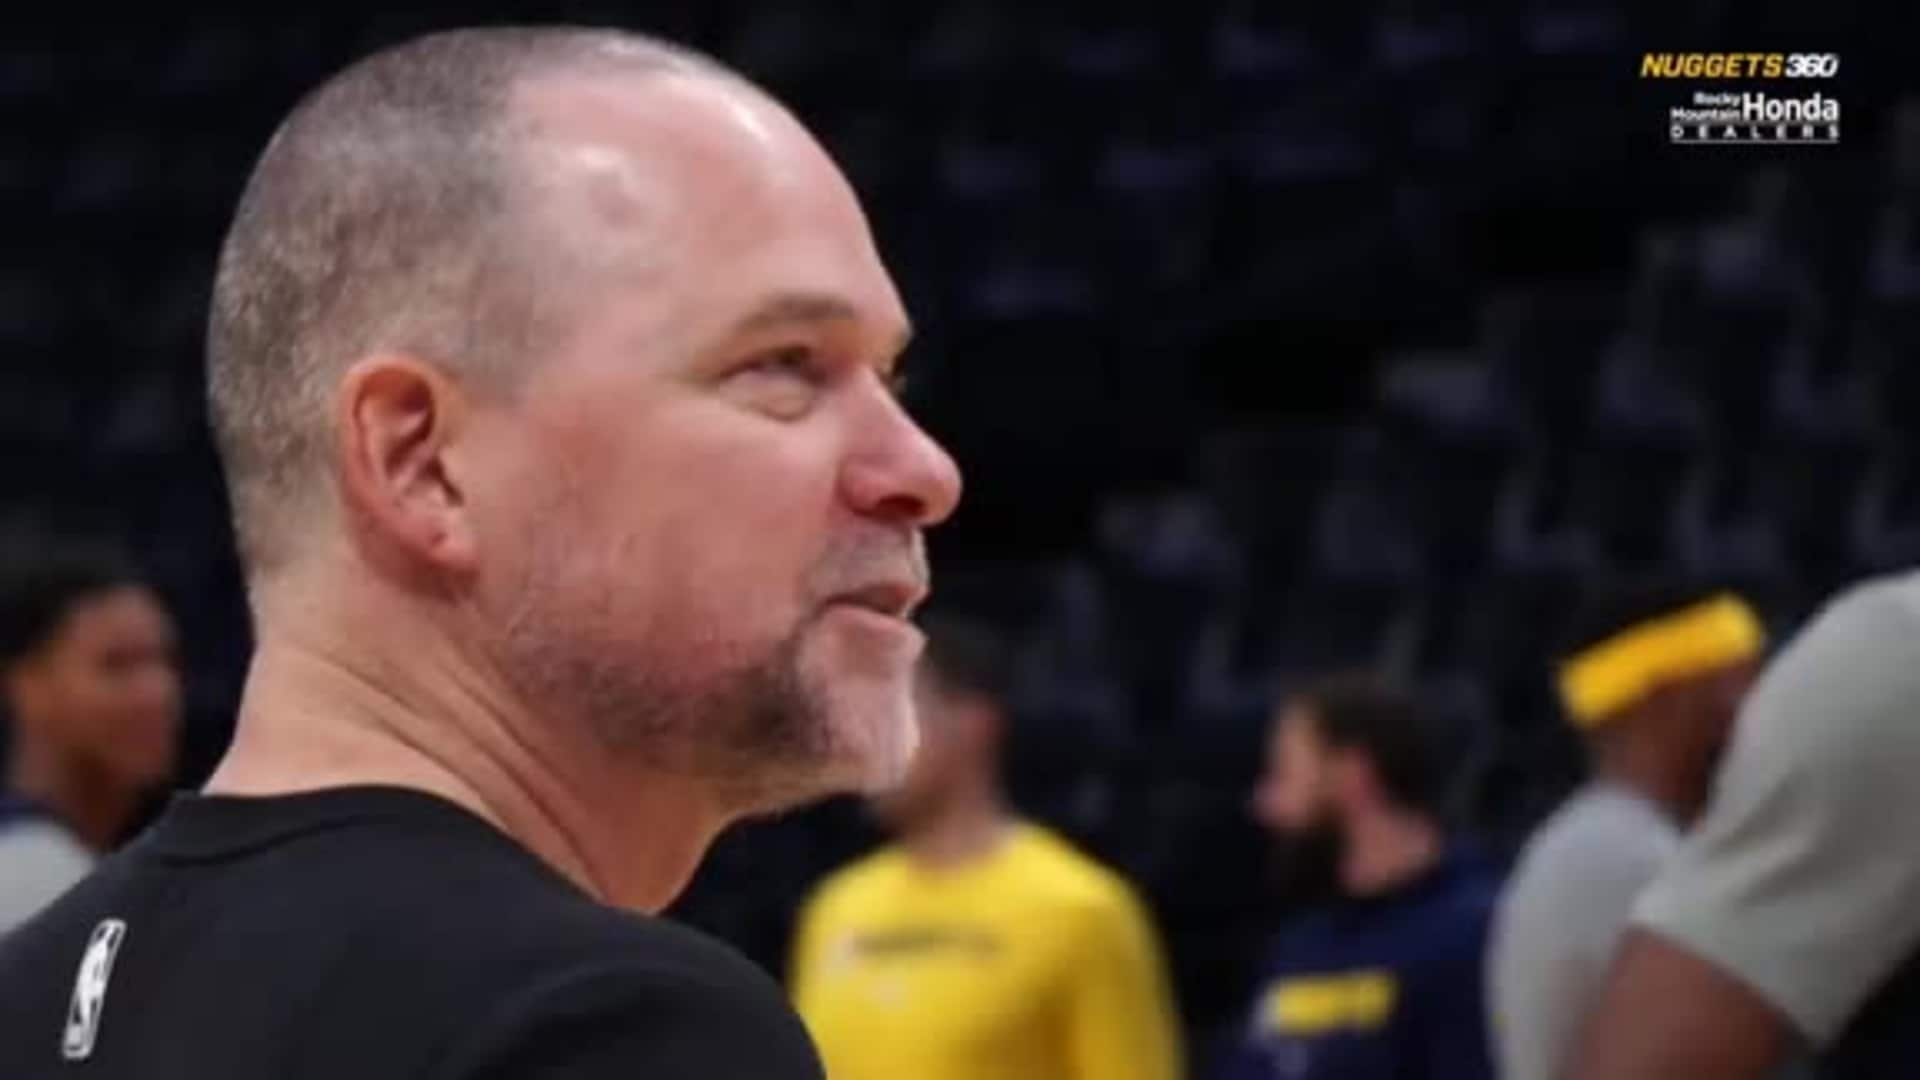 N360: Michael Malone's contract extension